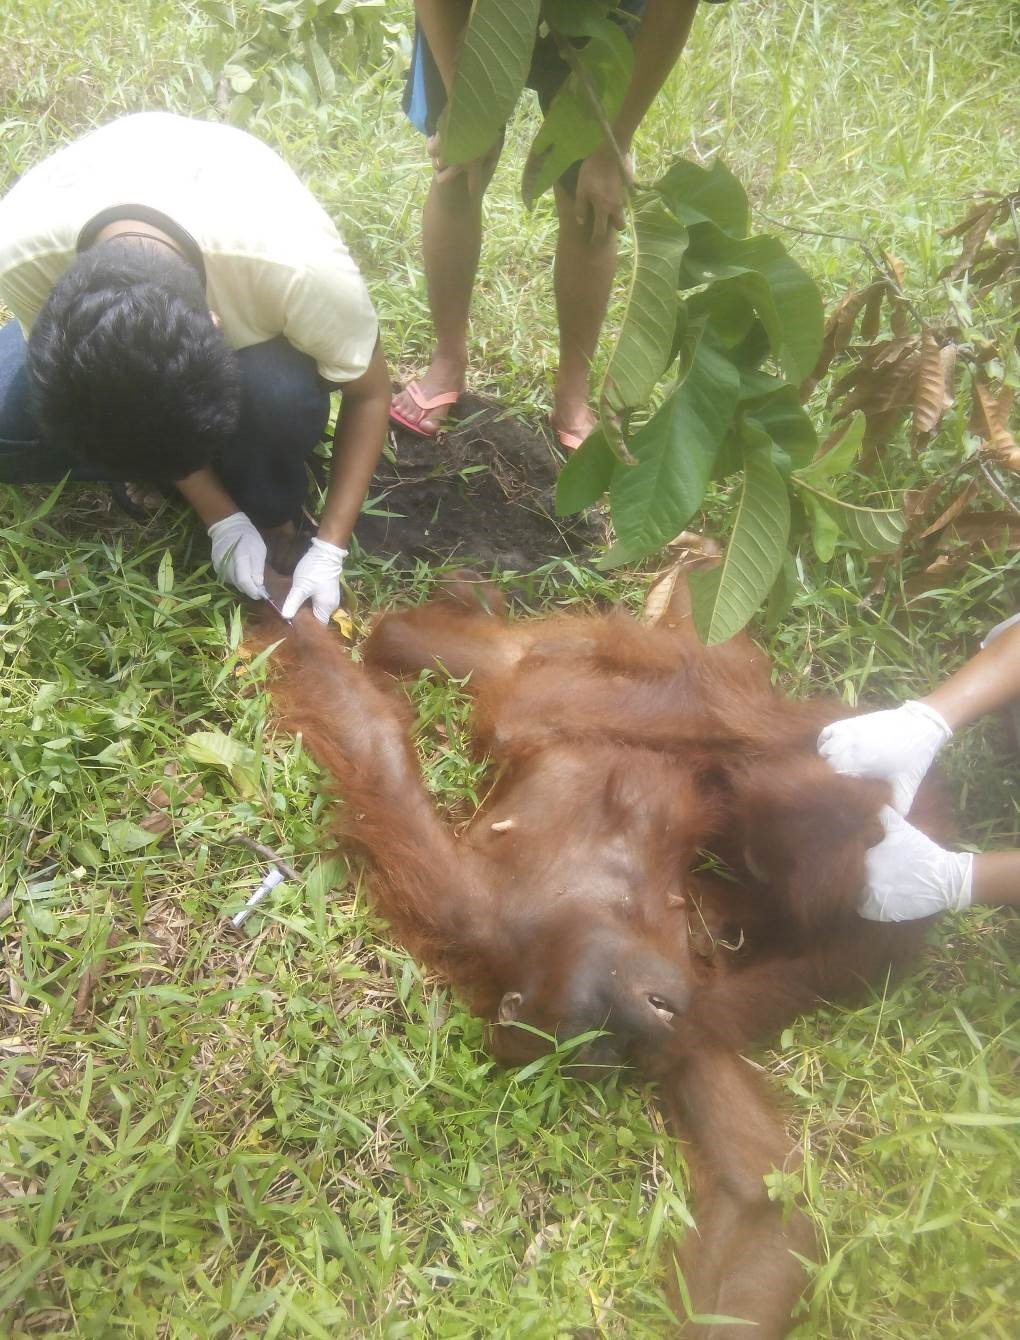 Treating adult Bornean orangutan, Acuy with de-worming medication.